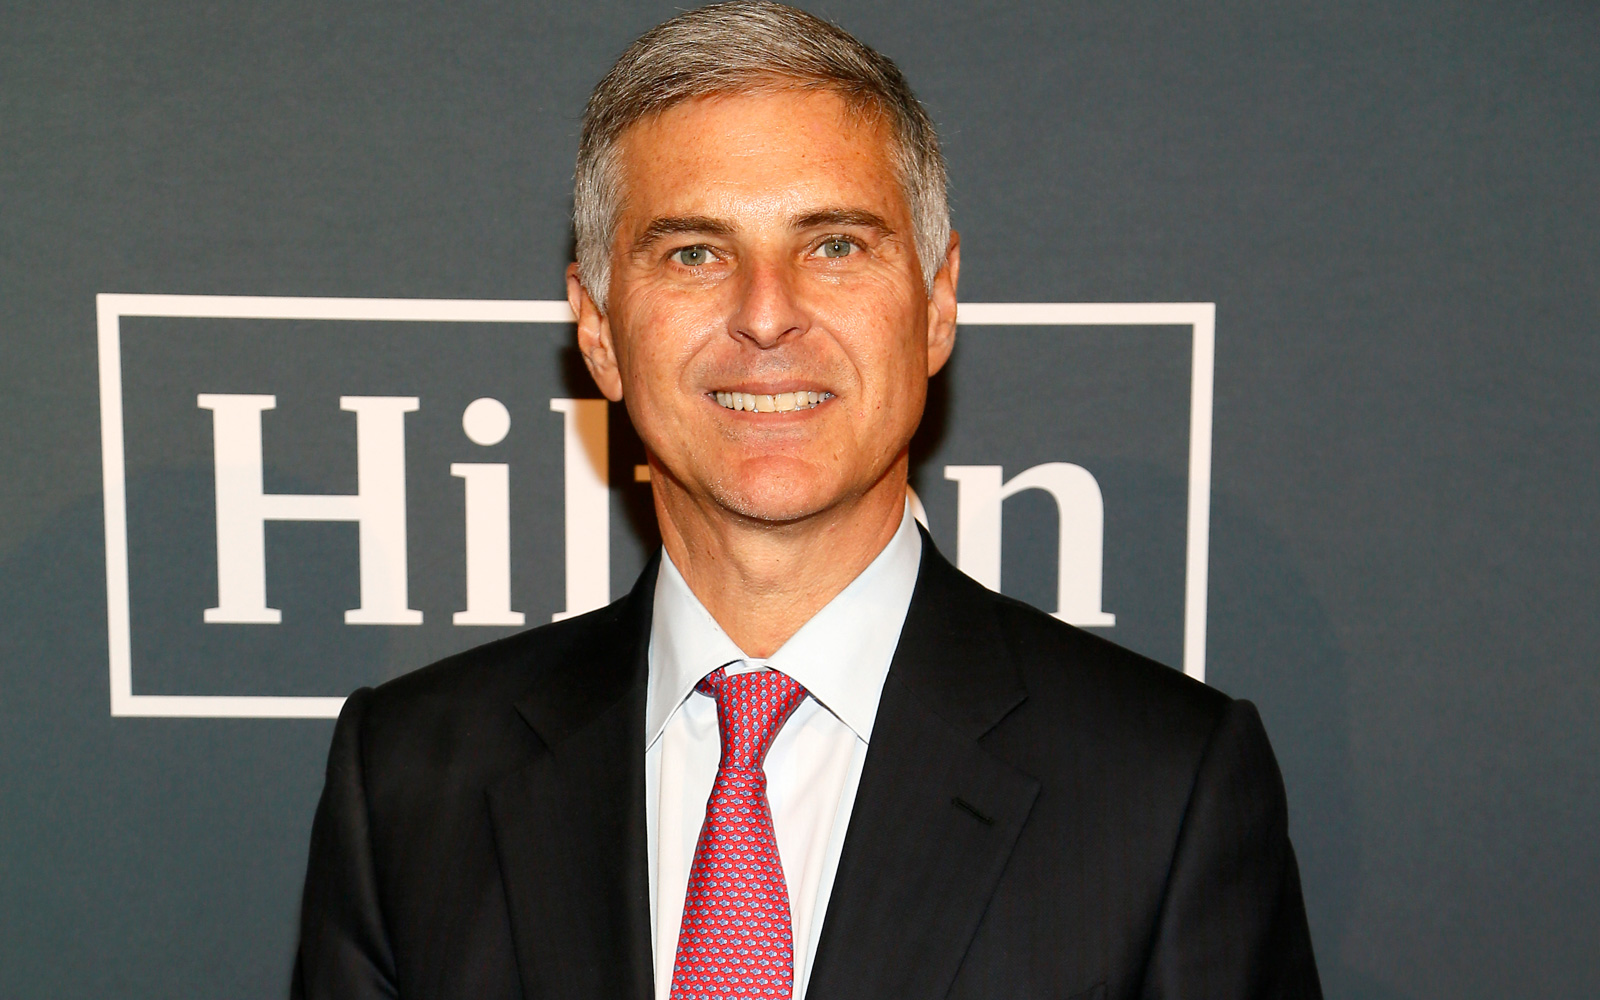 Hilton CEO, Christopher Nassetta